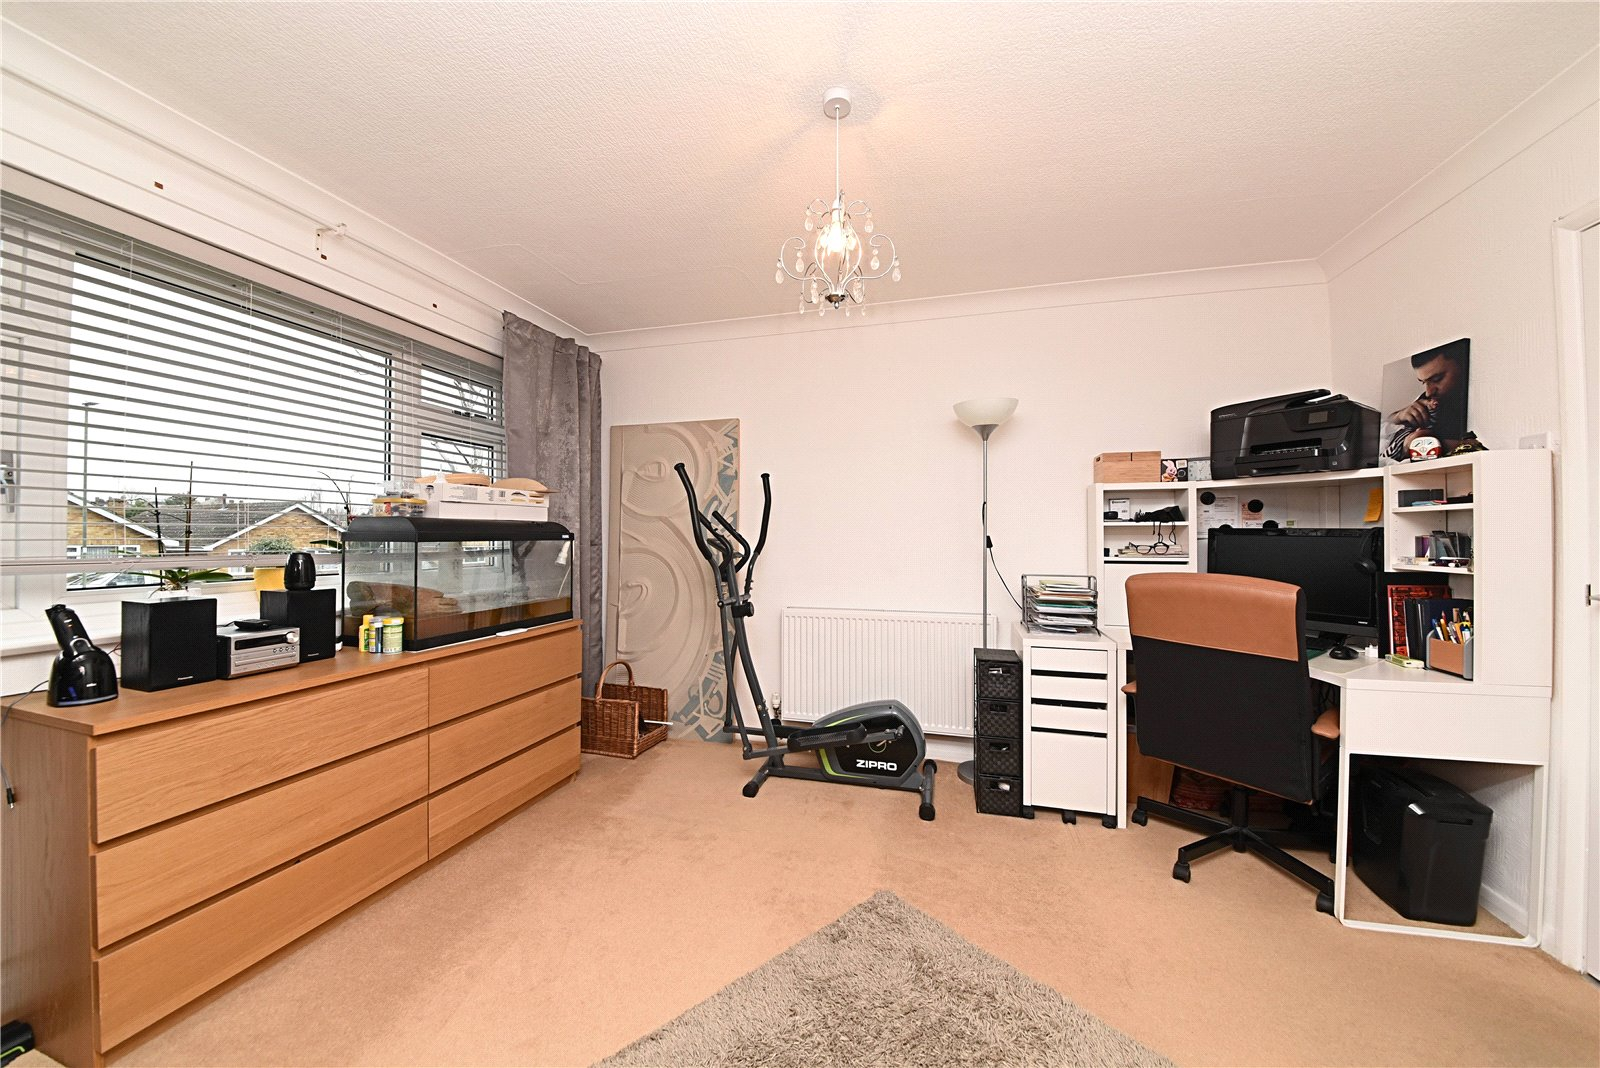 2 bed bungalow for sale in Barnet, EN4 9QT  - Property Image 8